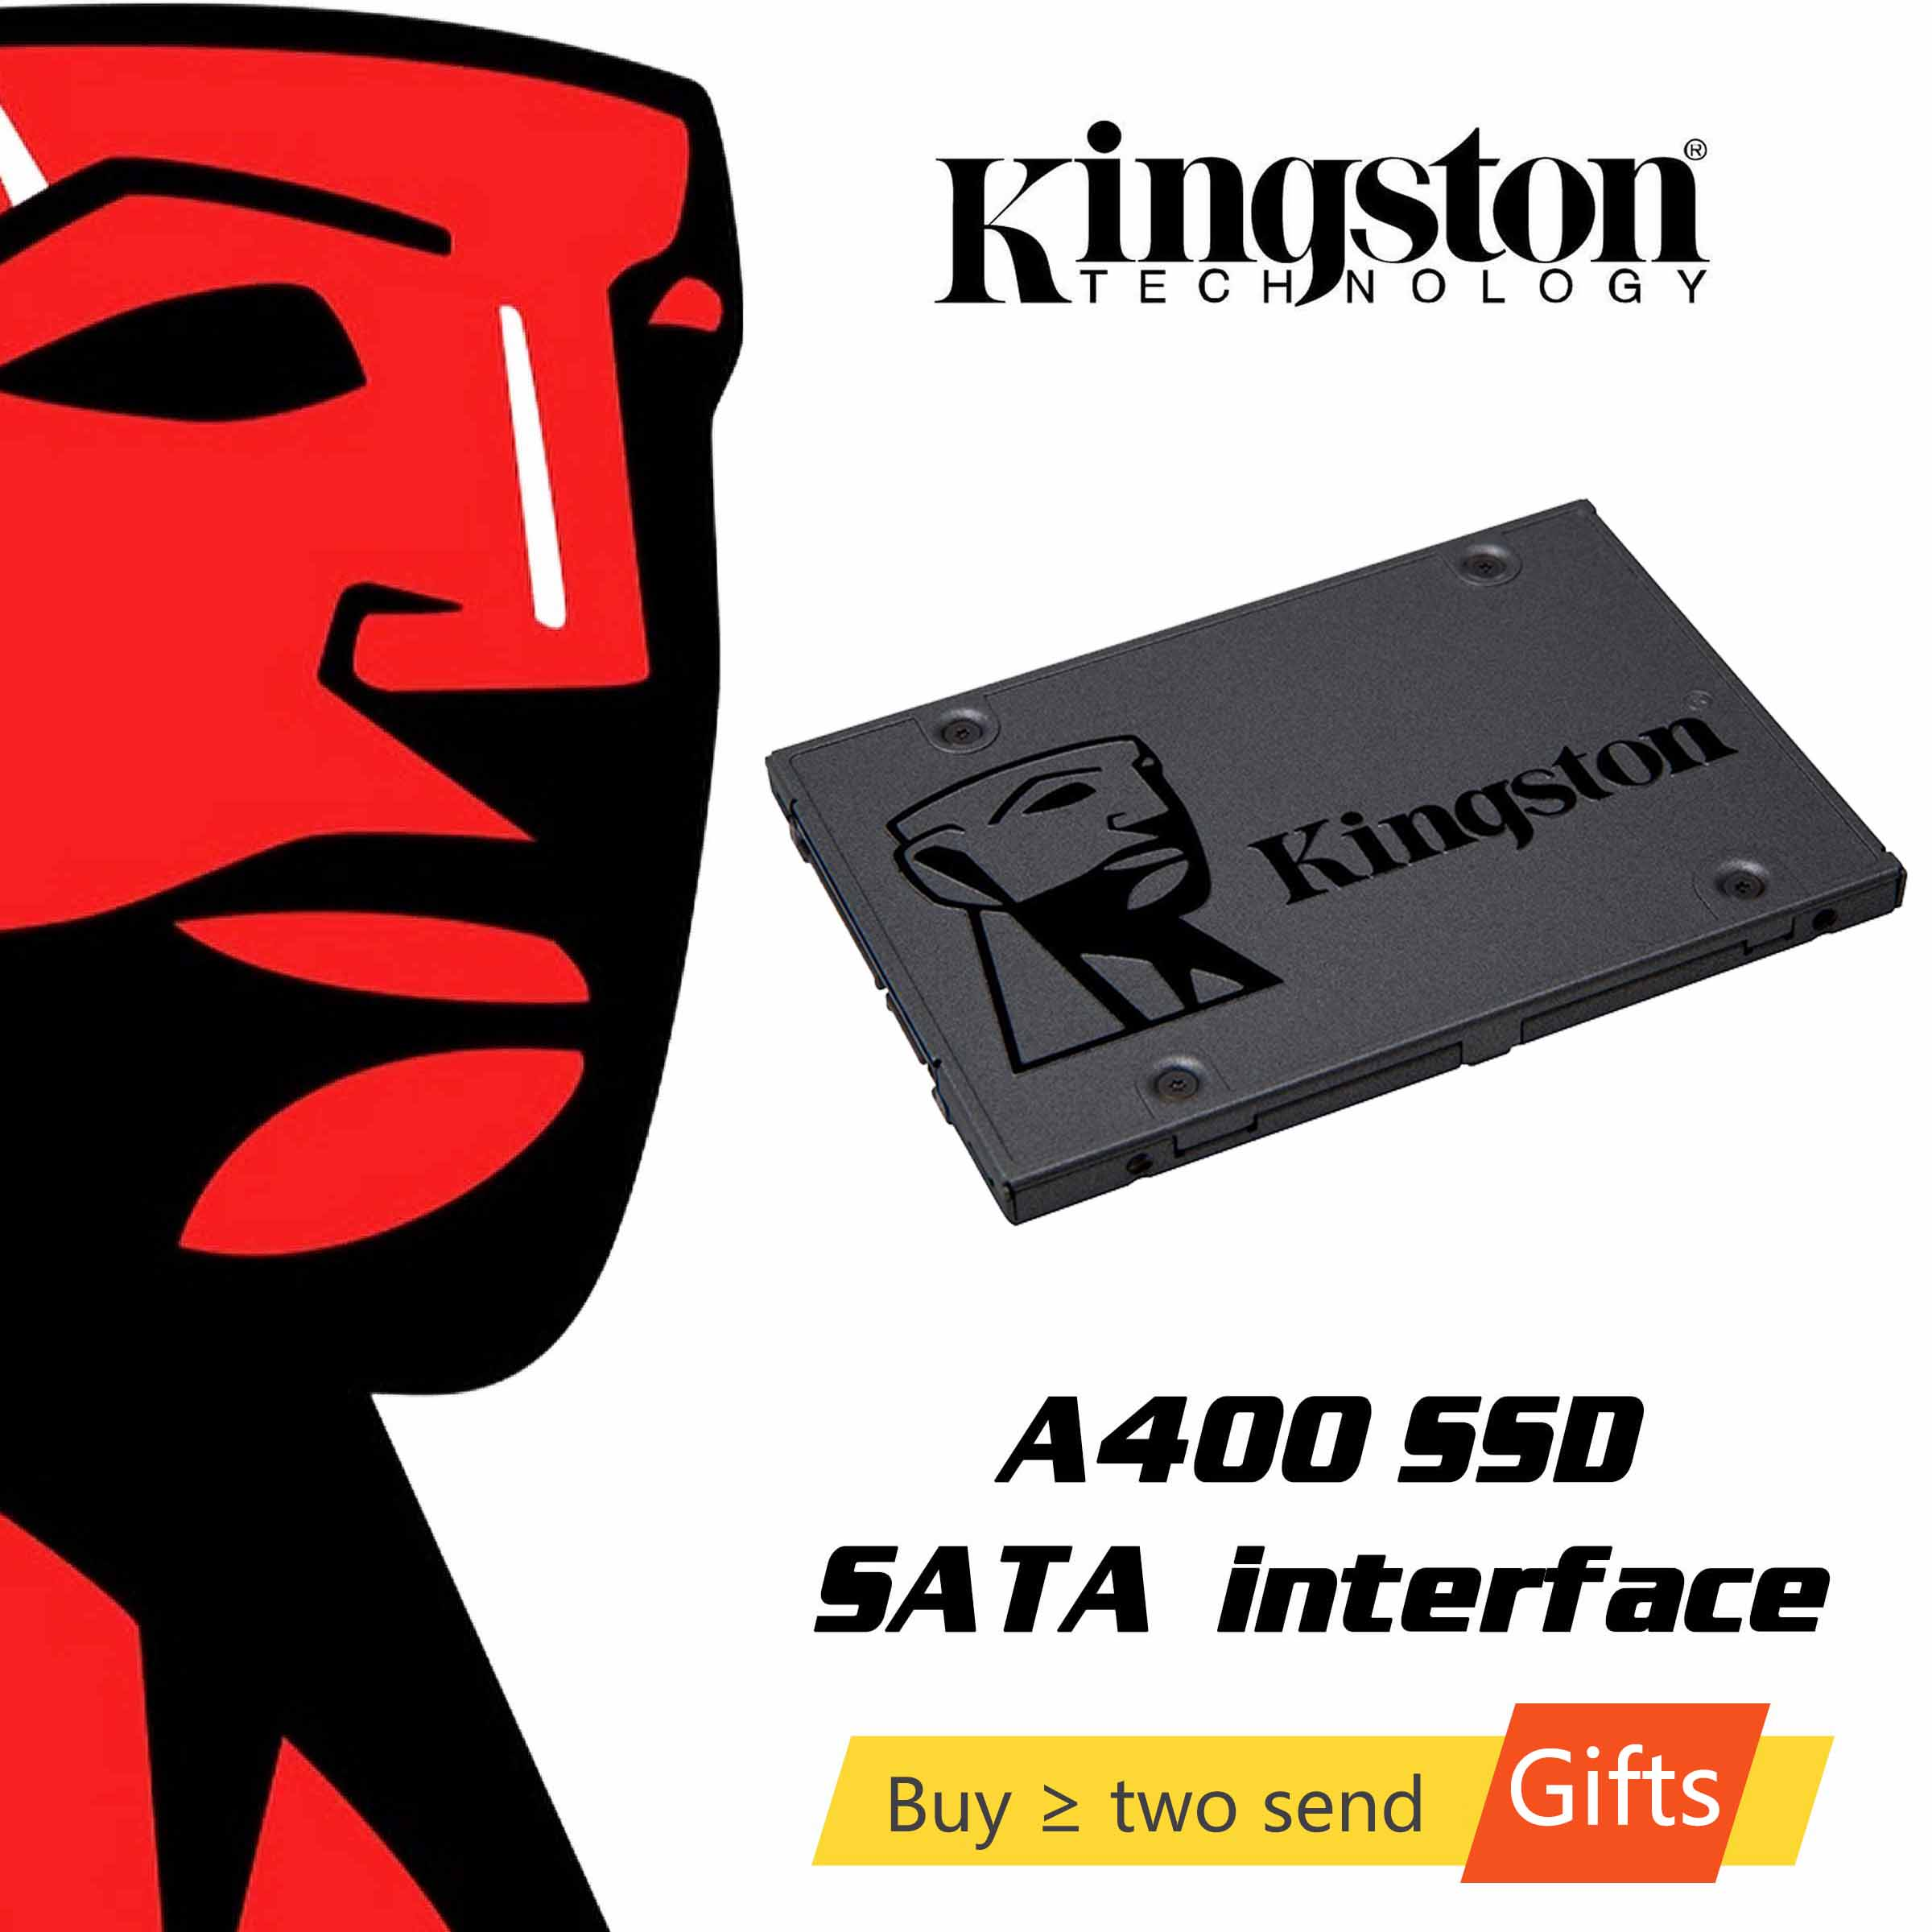 Kingston SSDNow A400 <font><b>120gb</b></font> 240gb 480GB <font><b>SSD</b></font> Solid State Drive 2.5 inch <font><b>SATA</b></font> III 120 240 g Notebook PC Internal HDD Hard Disk image